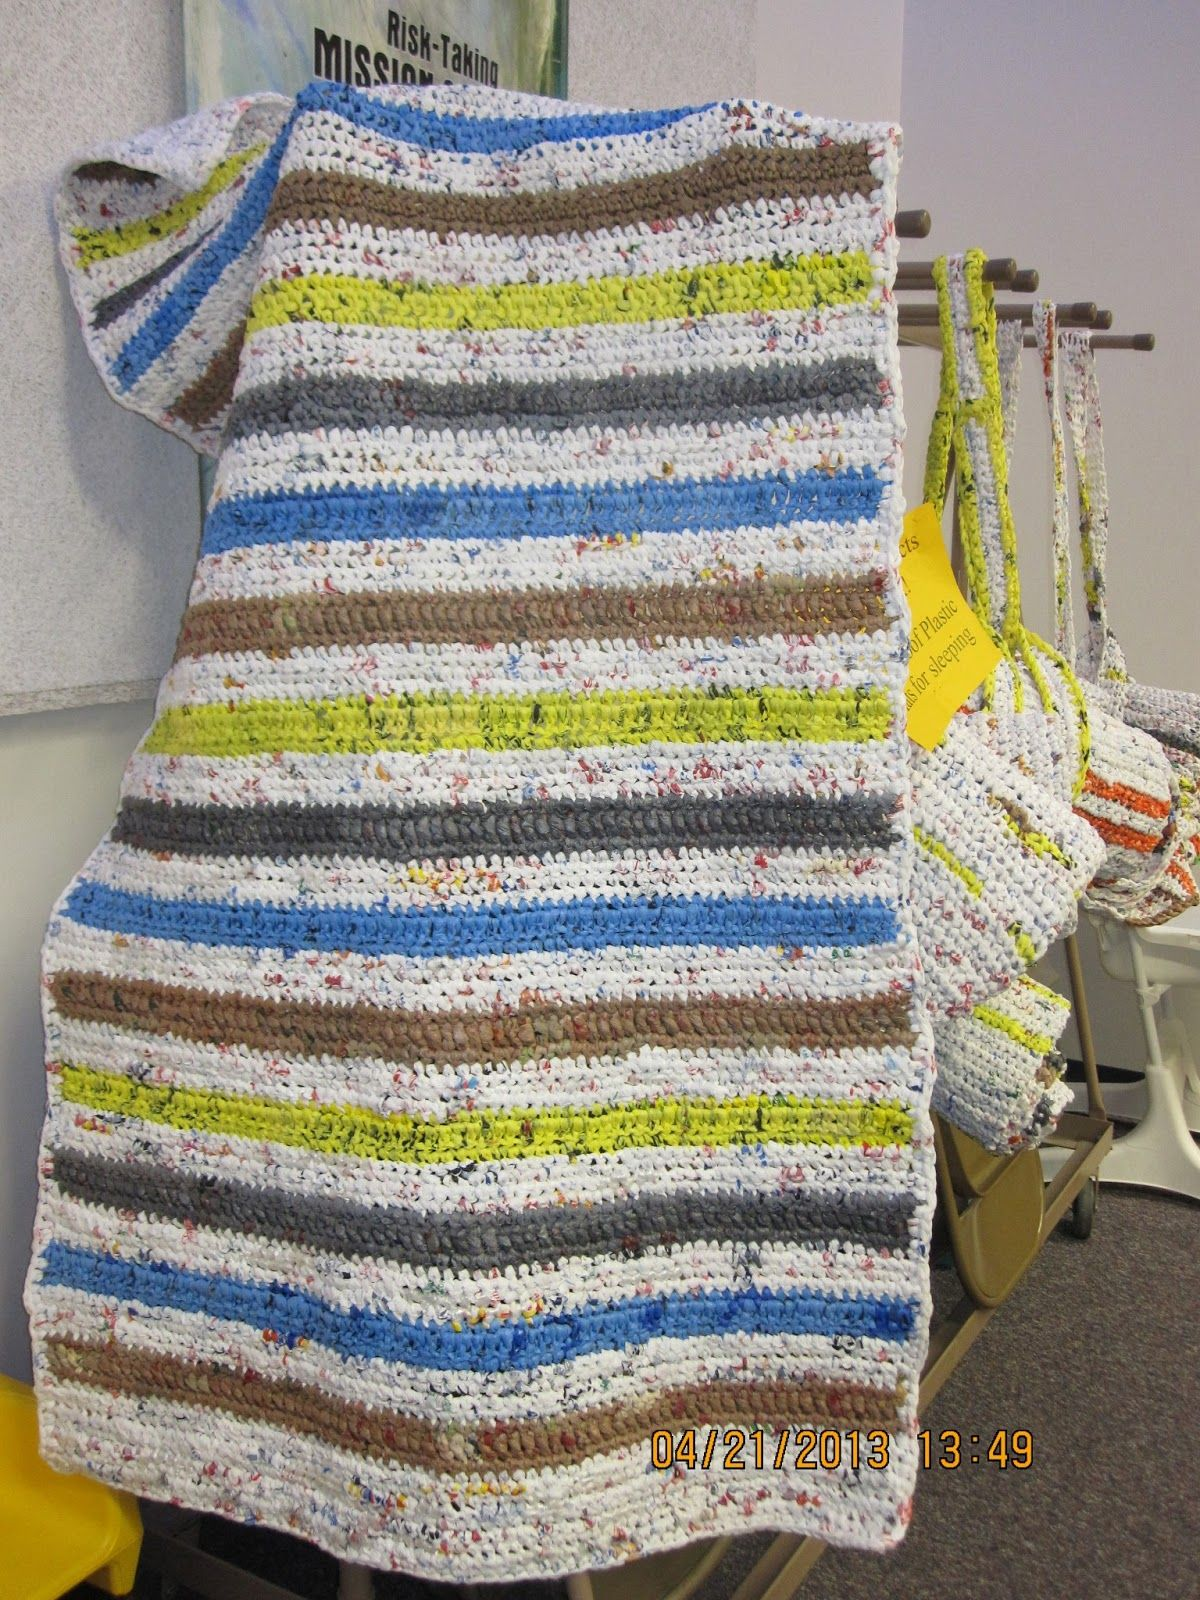 Plarn Blankets For The Homeless Great Idea Is Yarn Made Of Plastic Bags